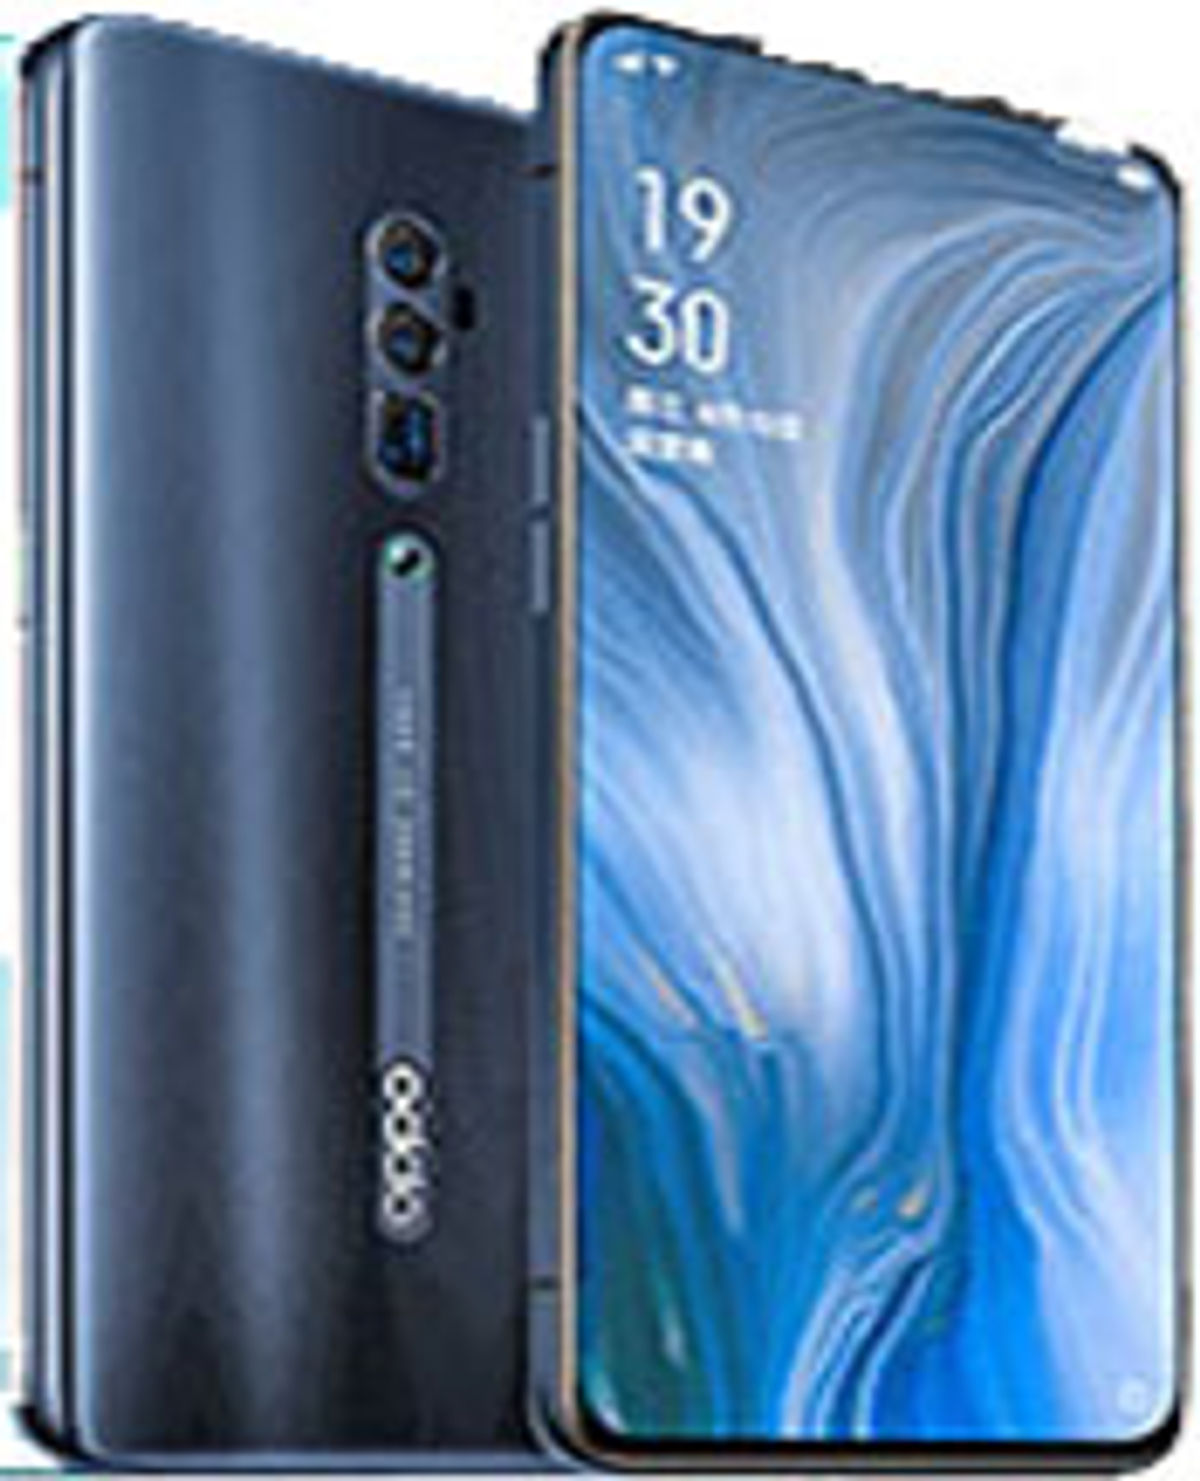 Best Android Phones in India September 2019 with Price and